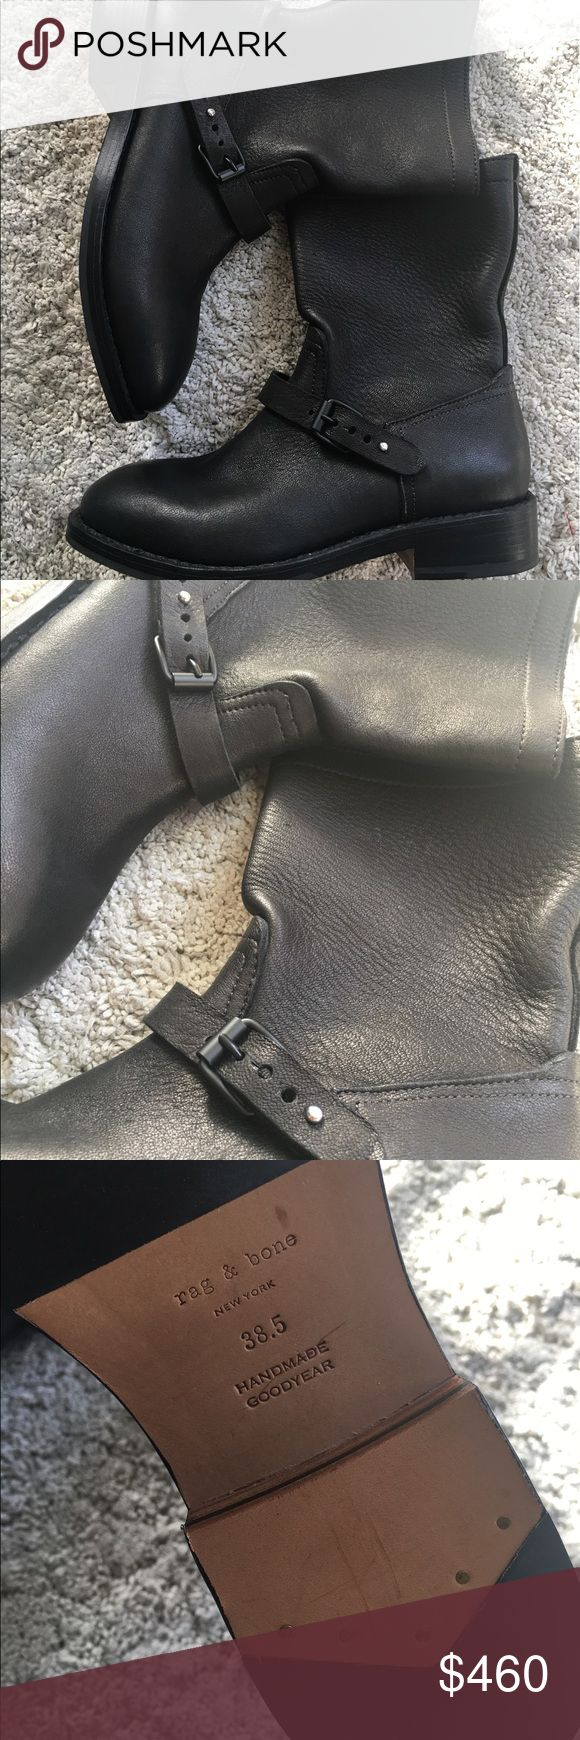 Rag and bone black Moto boots $595 Size 38.5 Rag and bone black booties size 38.5. It is not a stiff type of leather at the type. More relaxed. NEW WITHOUT BOX rag & bone Shoes Combat & Moto Boots